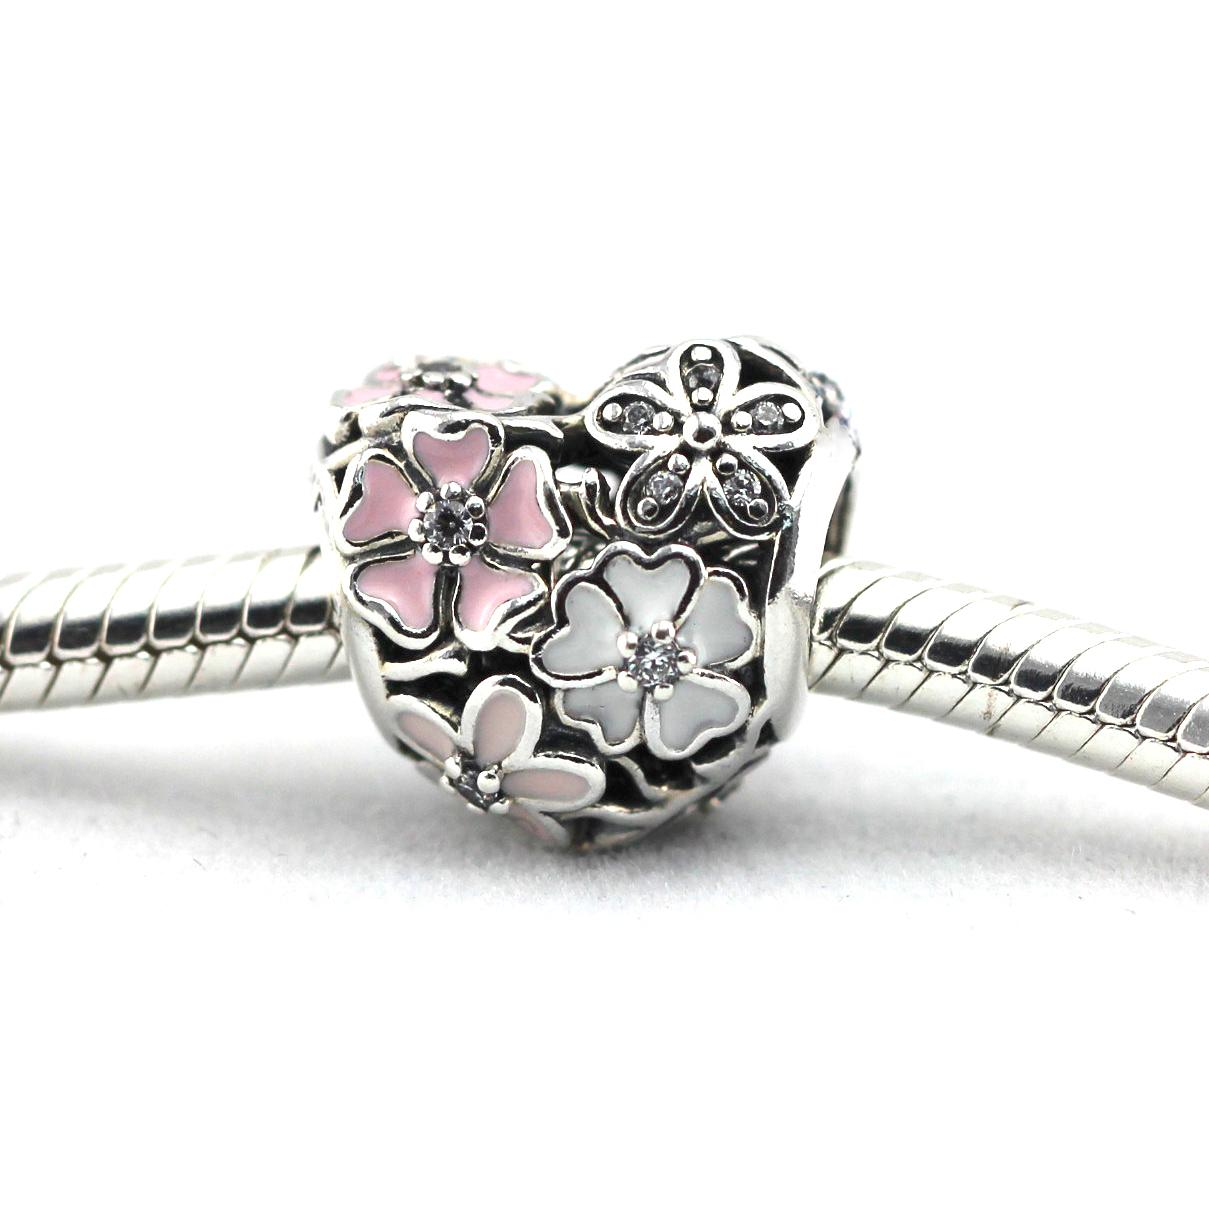 2016 primavera NEWEST original Authentic 925 sterling silver beads Flores Poetic Charme DIY se encaixa para pulseiras pandora atacado / lote